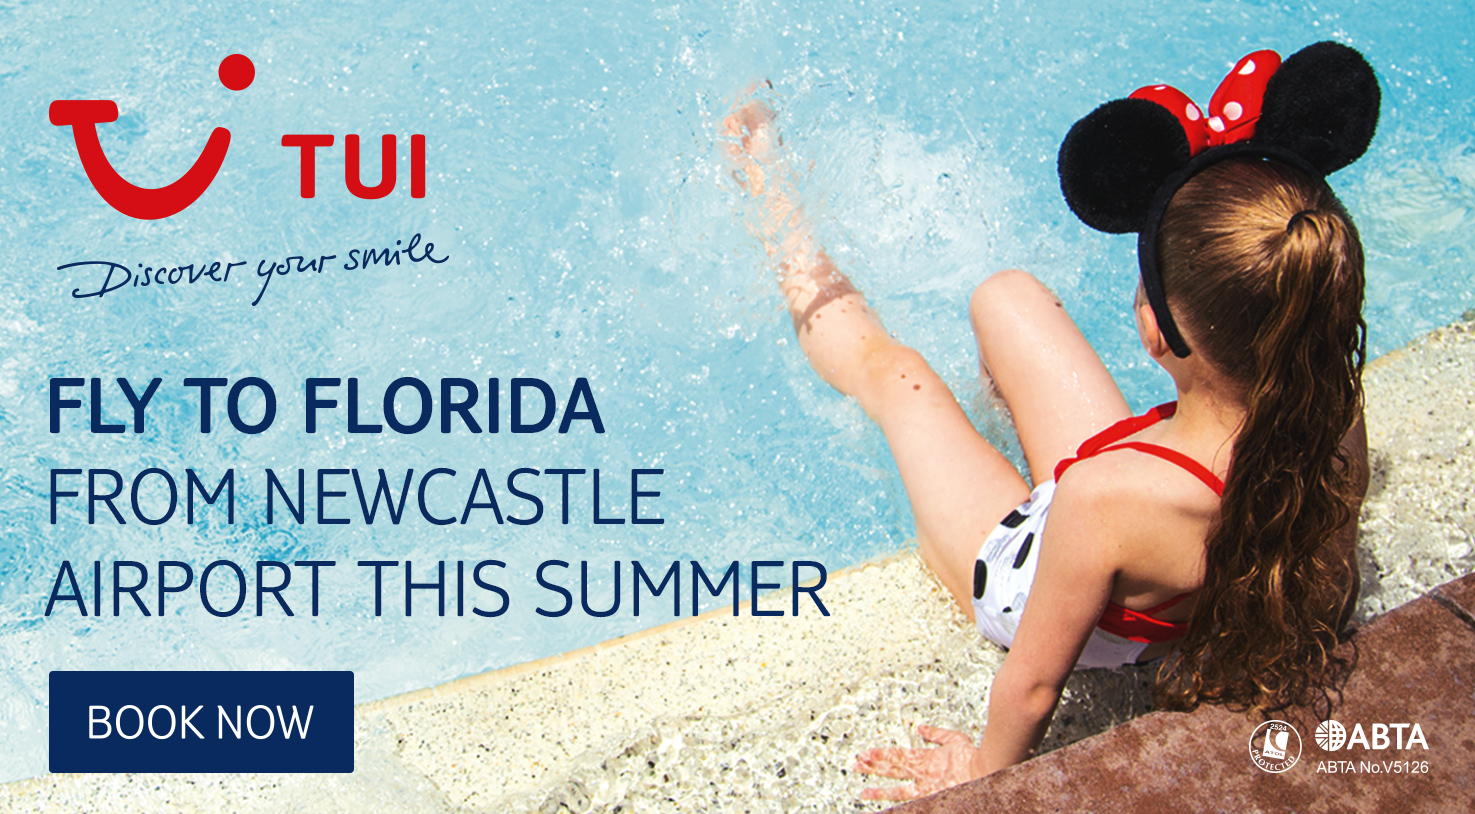 TUI - Florida this Summer